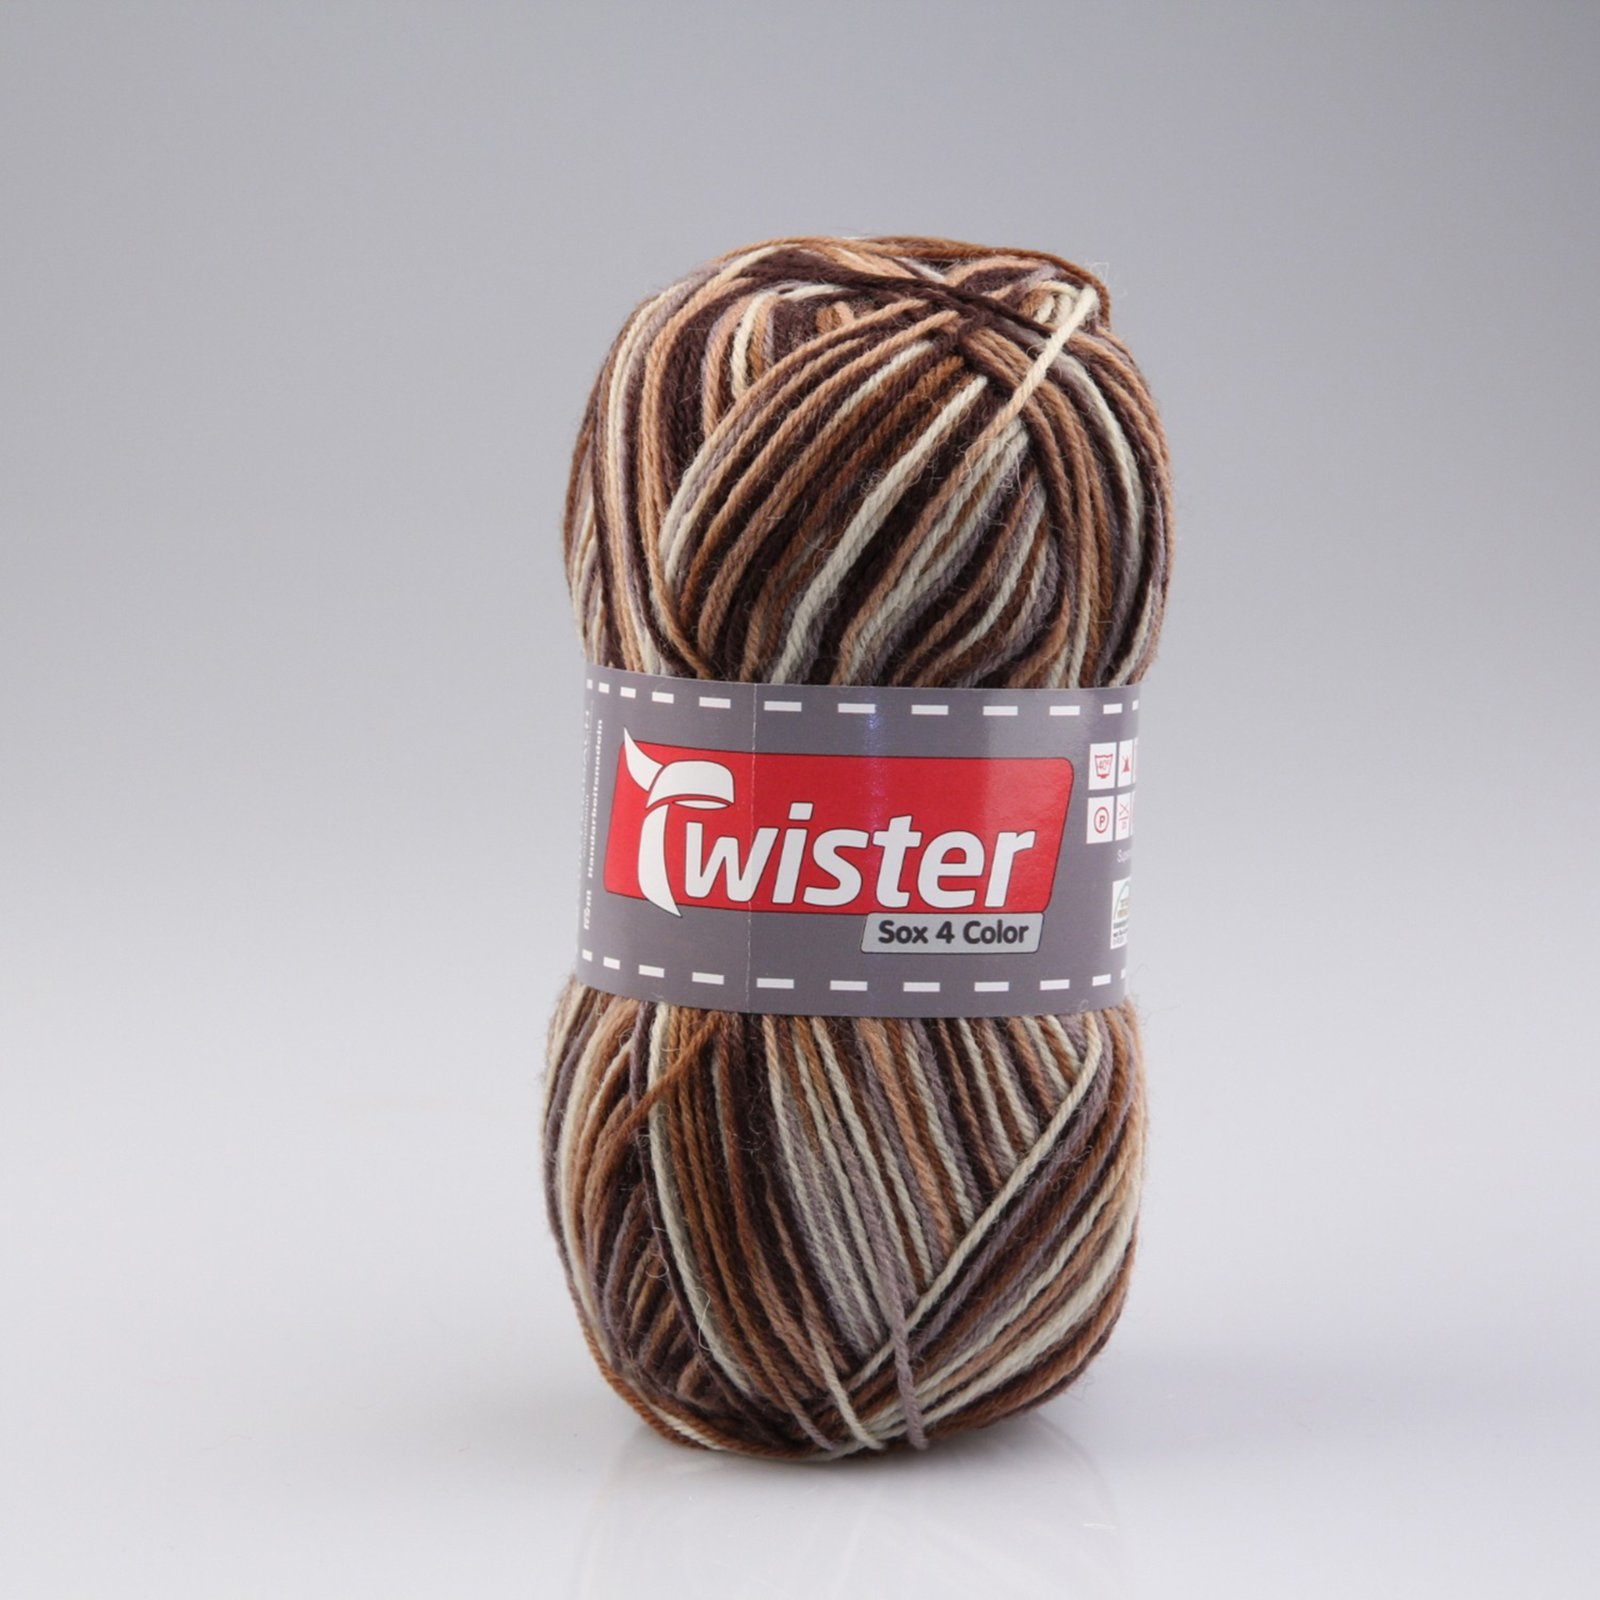 Wolle TWISTER SOX COLOR - braun-beige multi - 100g